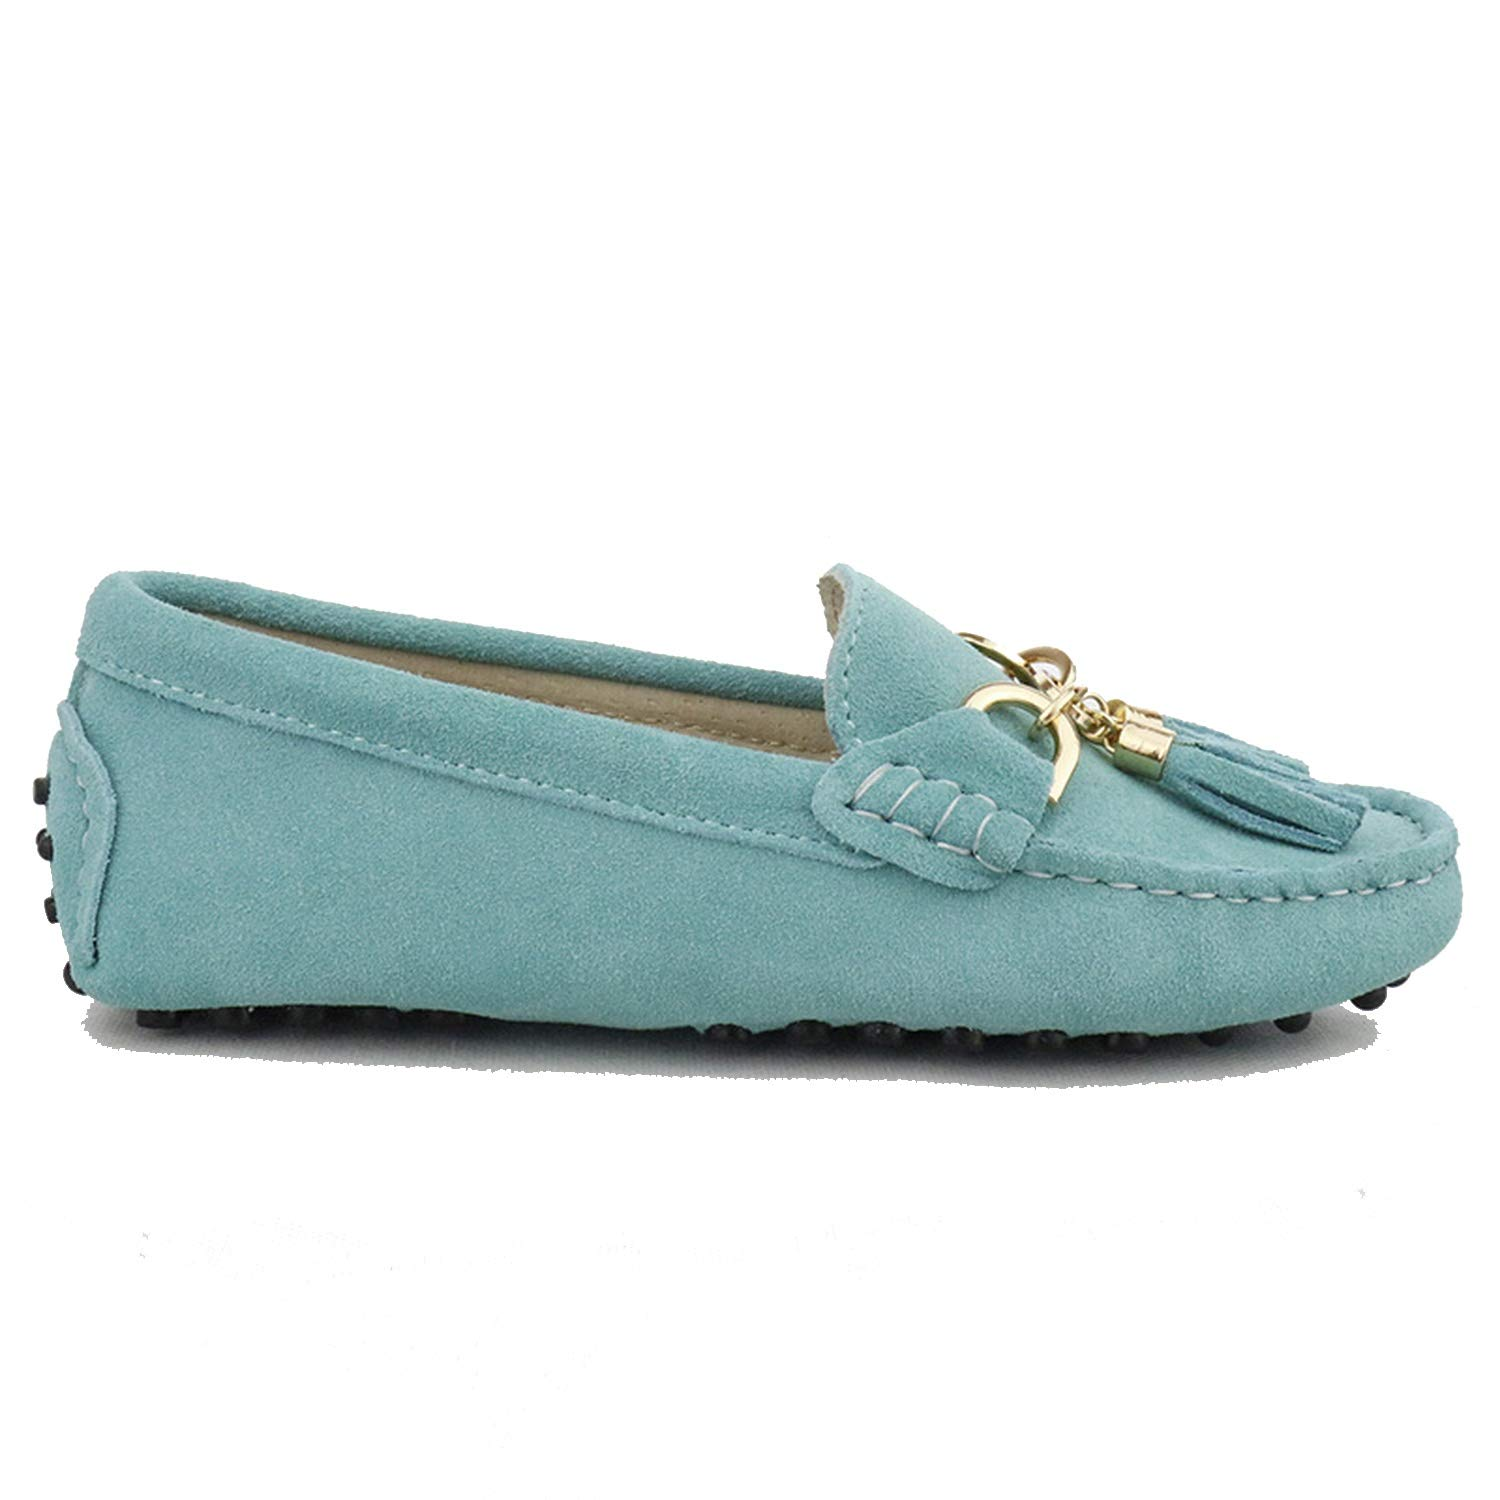 Green Lake Fashion Women Lady Leather Loafers Casual Driving shoes Women Flats shoes